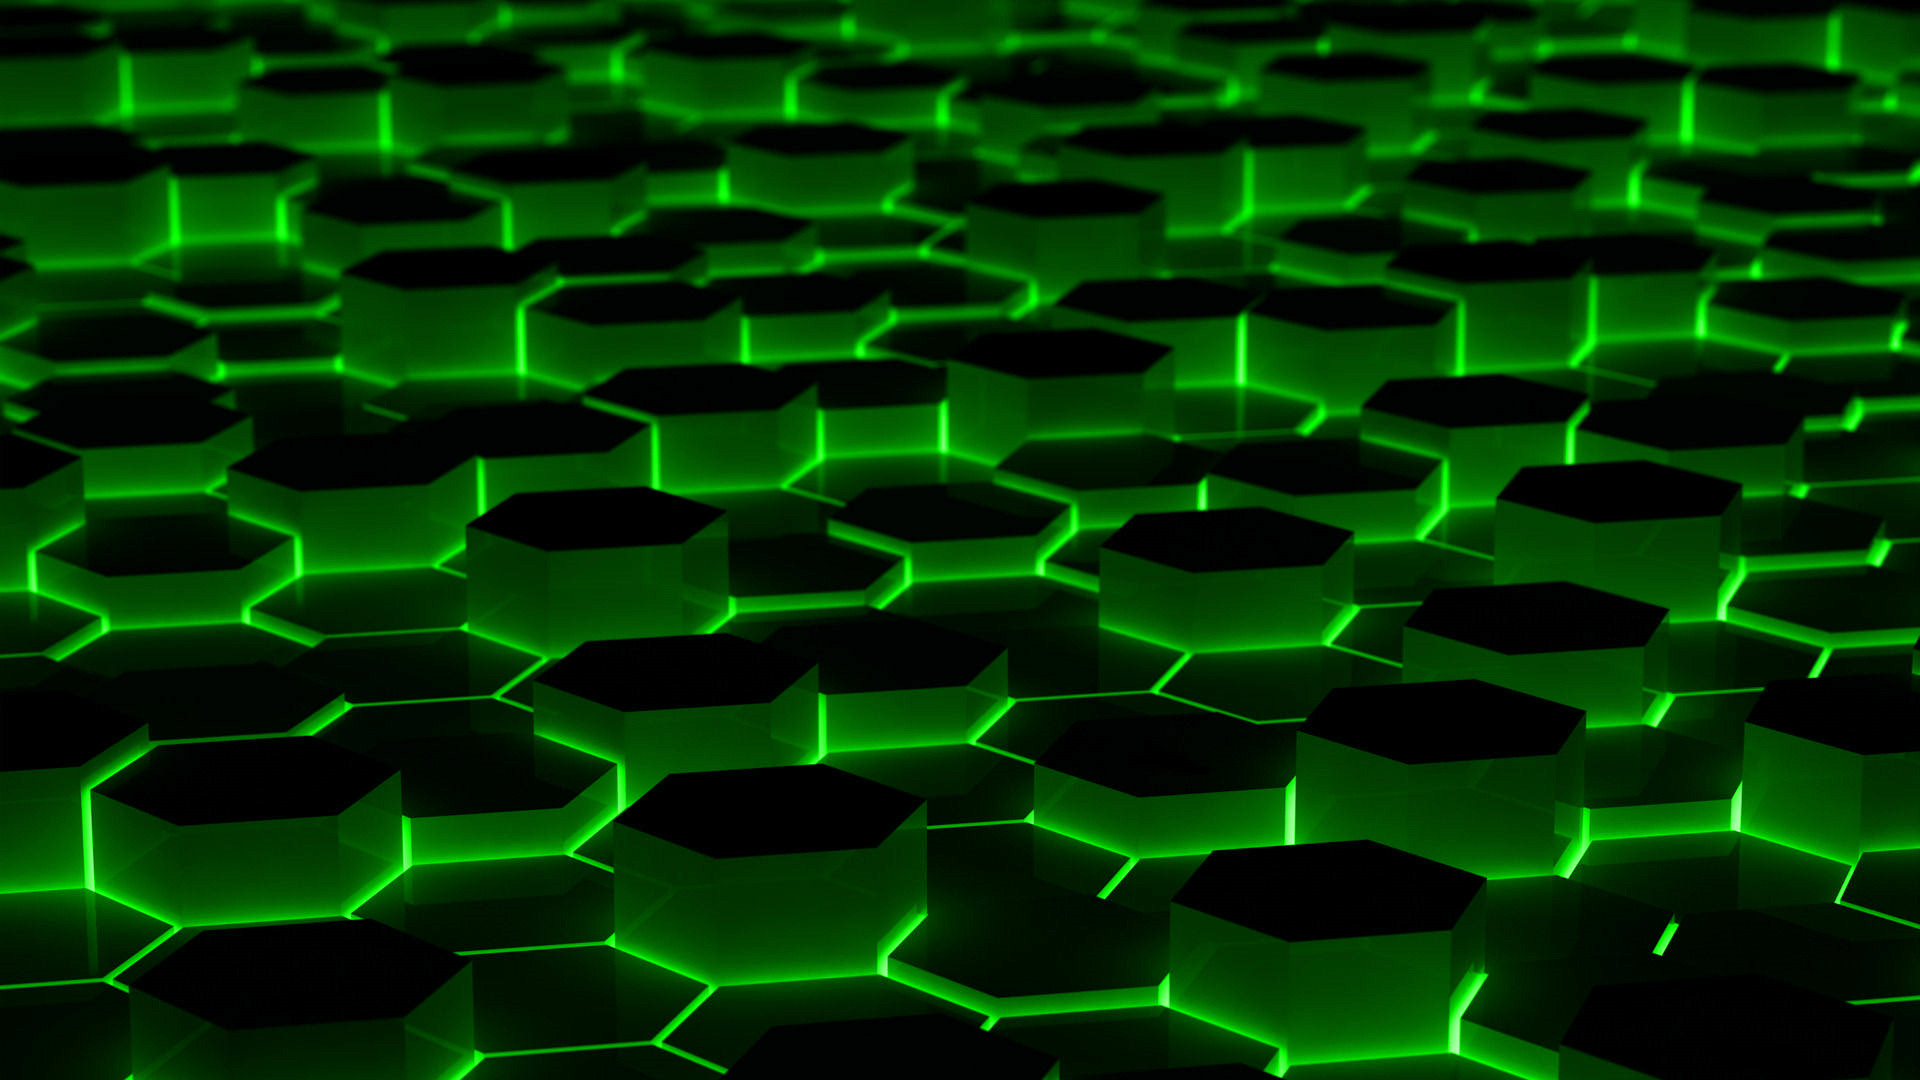 … Collection of Black Green Wallpaper Hd on Spyder Wallpapers